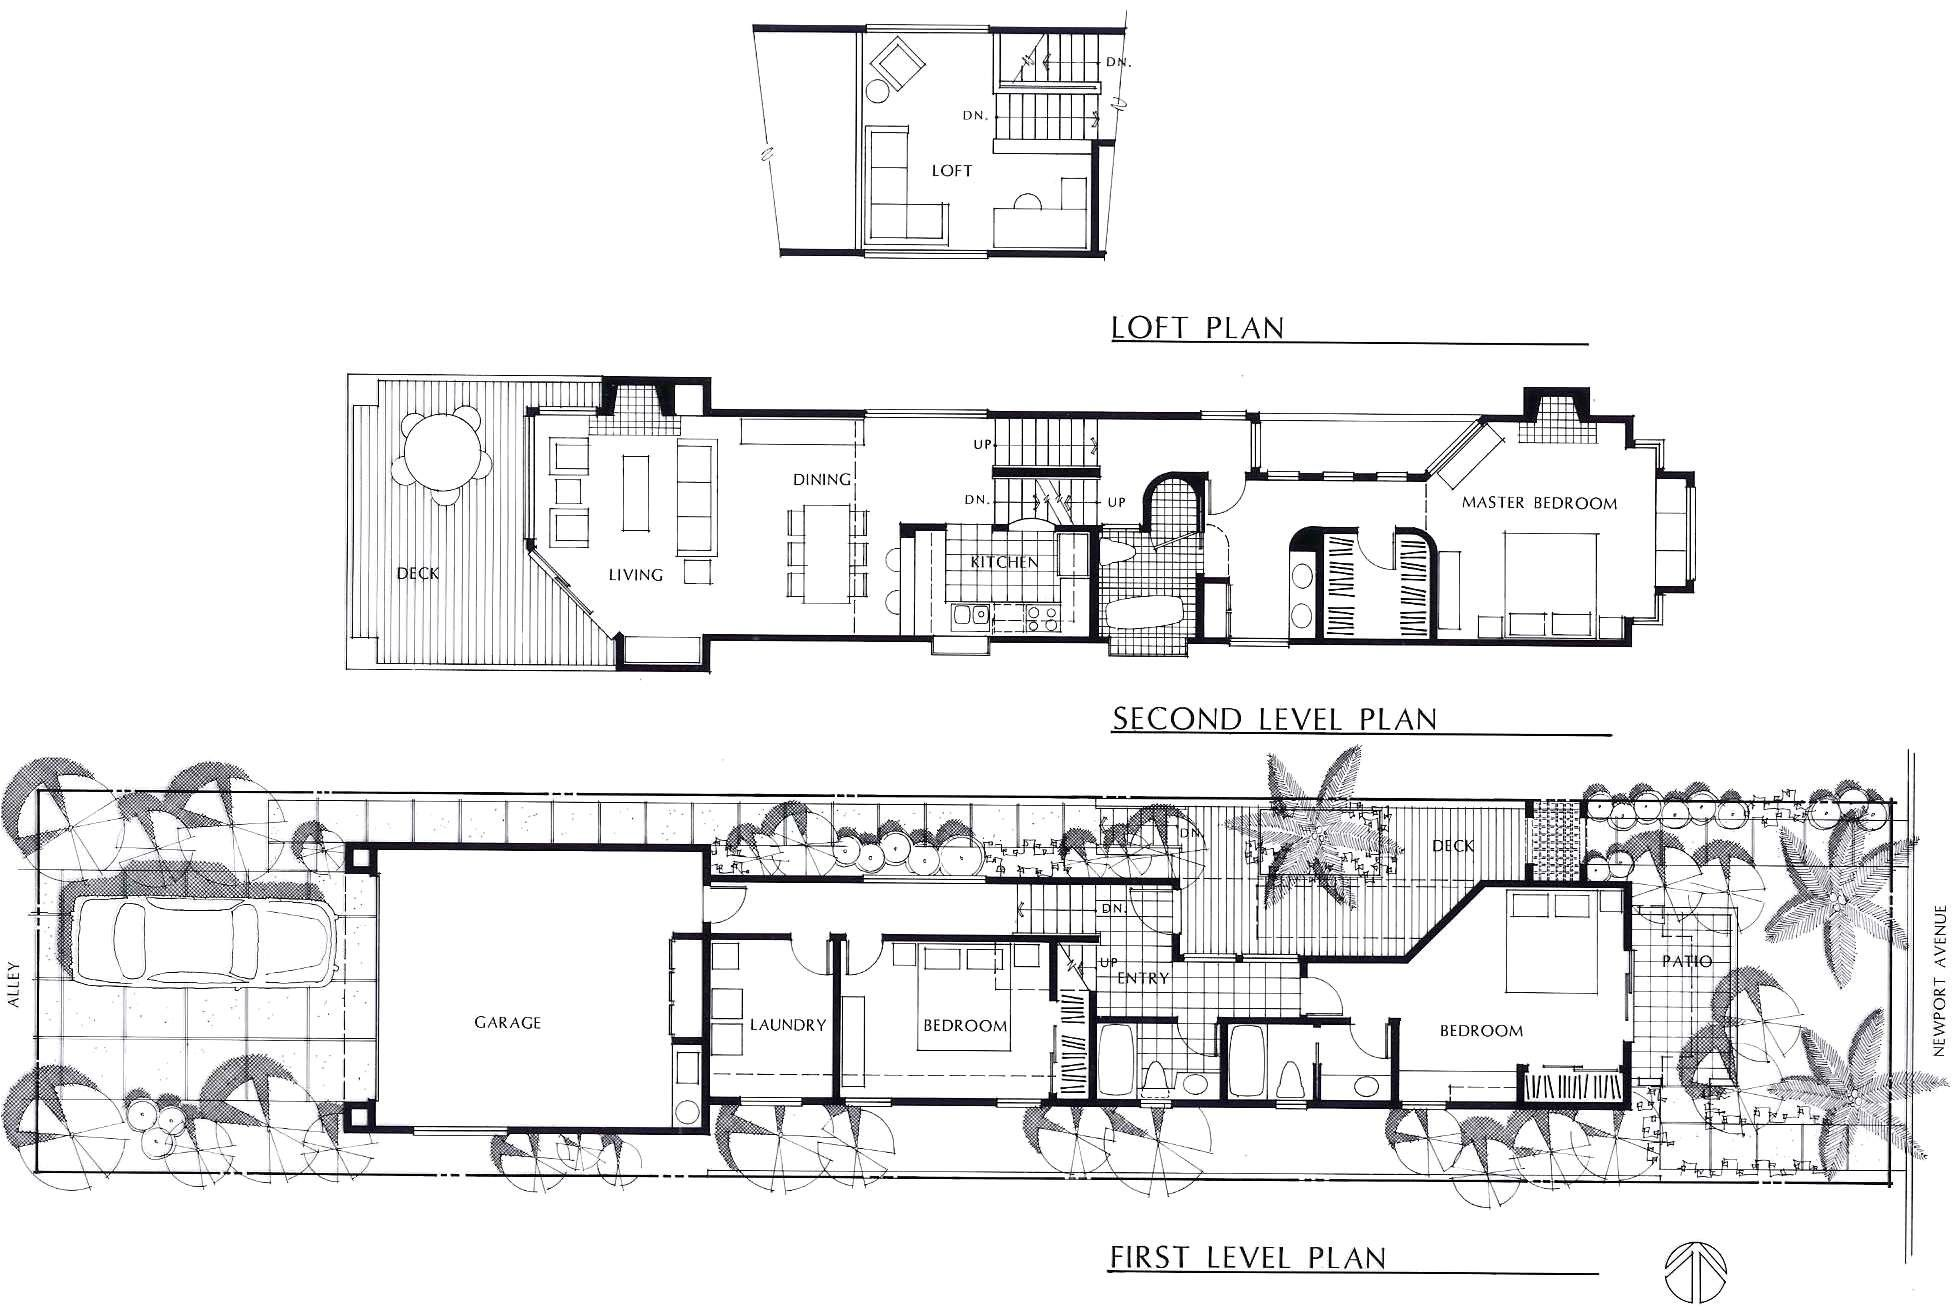 Pin by Ken U. Mathis on House Plans in 2019   Luxury floor ... Narrow Lot House Plans Waterfront on narrow lot cottage plans, modern narrow house plans, long narrow house plans, low country beach house plans, narrow lot homes, narrow waterfront home plans, narrow lakefront house plans, narrow lot townhouse plans, mountain cabin house plans, small lot house plans, narrow lot apartment plans, simple one story house floor plans, narrow lot cabin plans, narrow lot floor plan, shallow lot house plans, 30 by 30 house plans, hot tub house plans, narrow house plans with front garage, deck house plans, narrow coastal house plans,